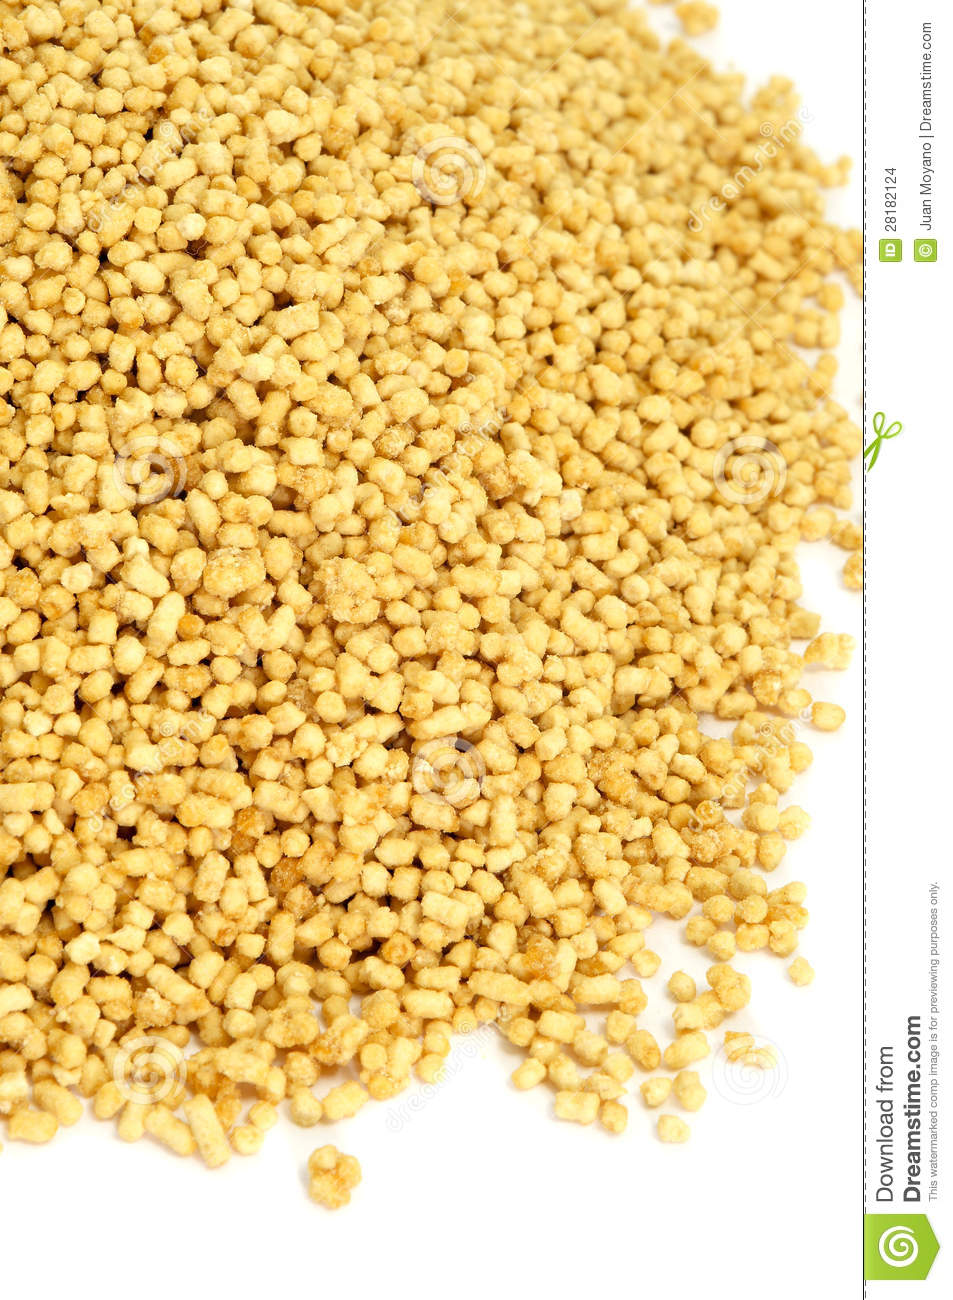 how to use soya granules